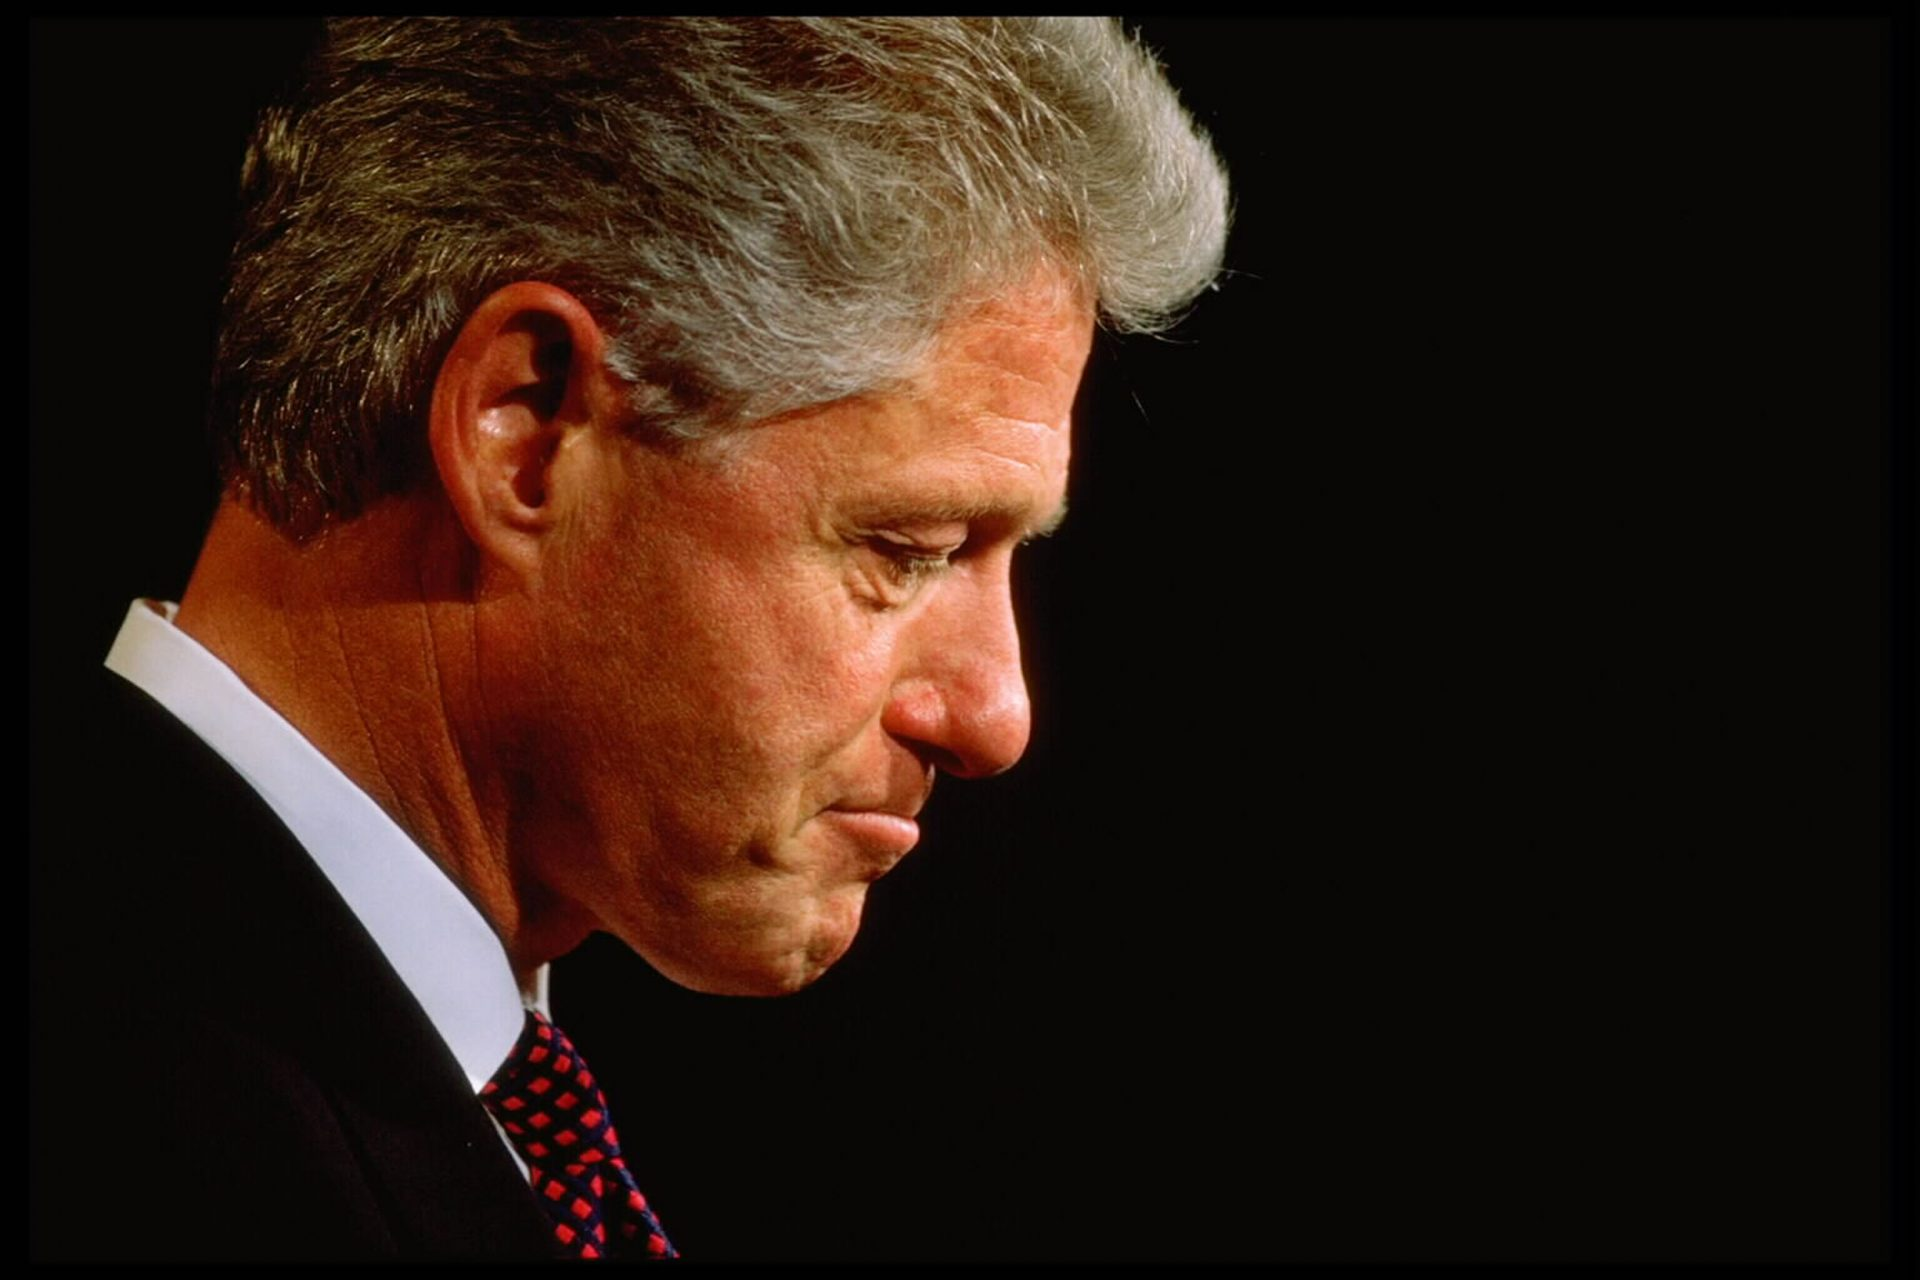 Bill Clinton said he will not apologize to Monica Lewinsky